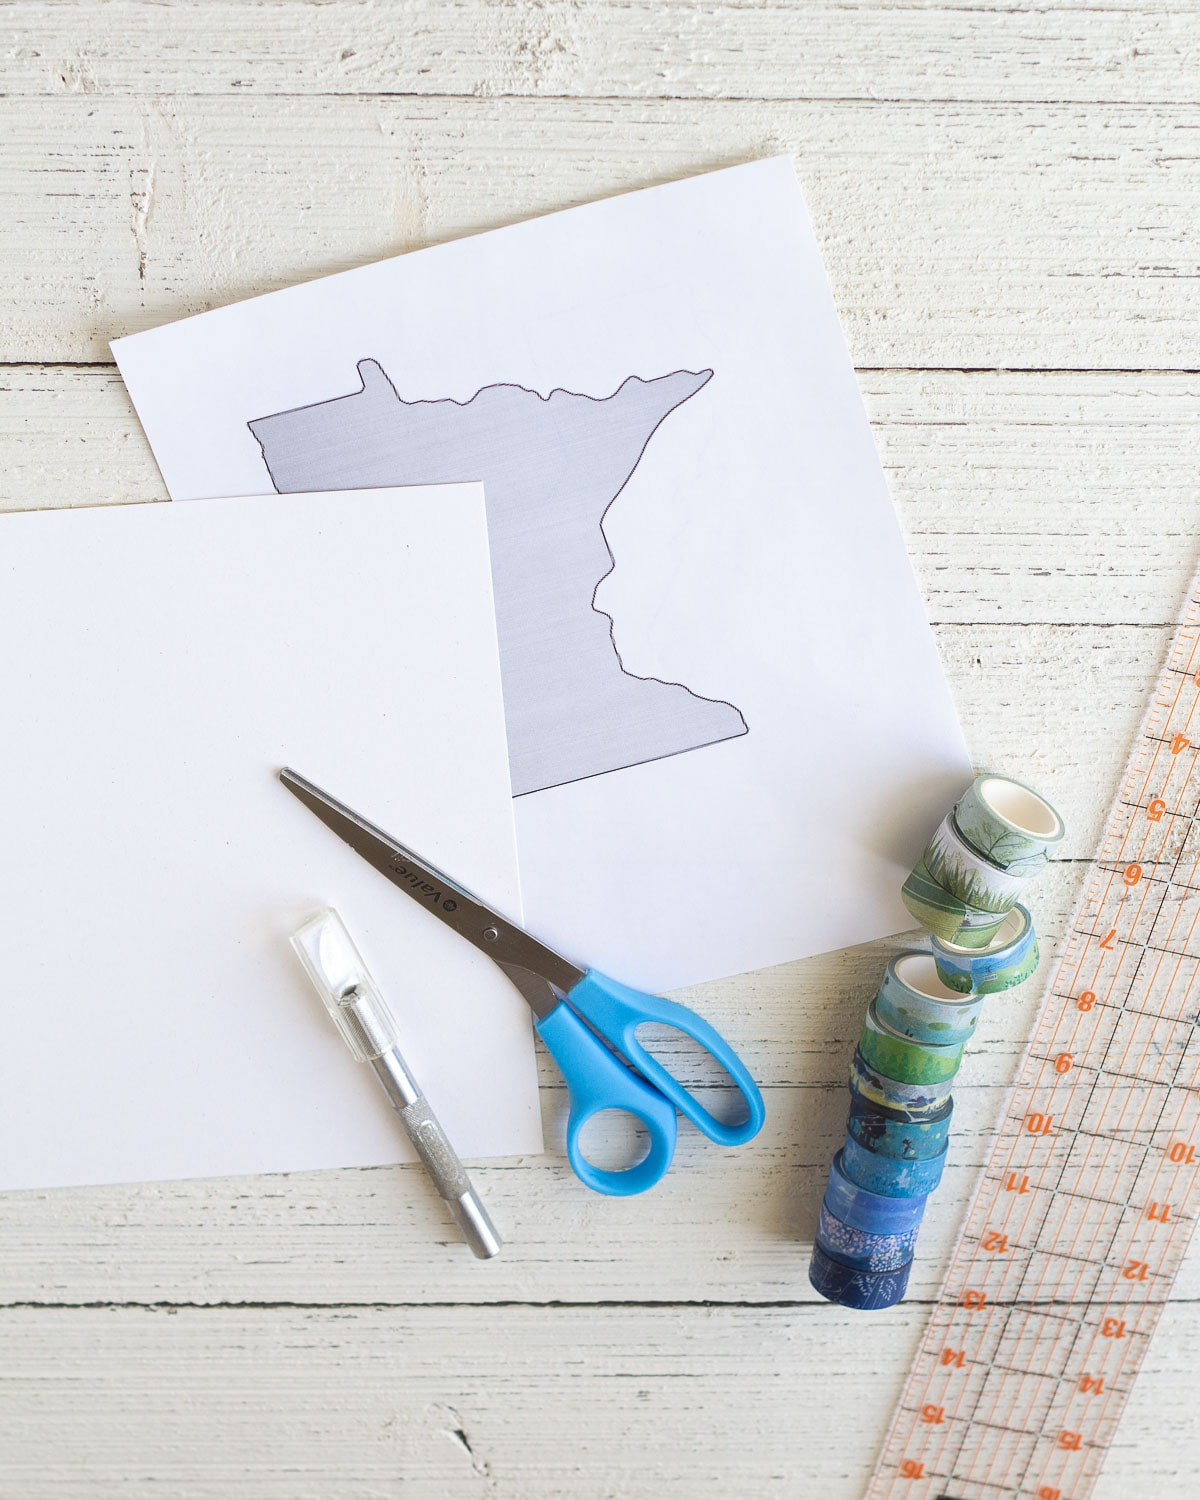 A ruler, washi tape, scissors, craft knife, cardstock, and a template of the state of Minnesota.